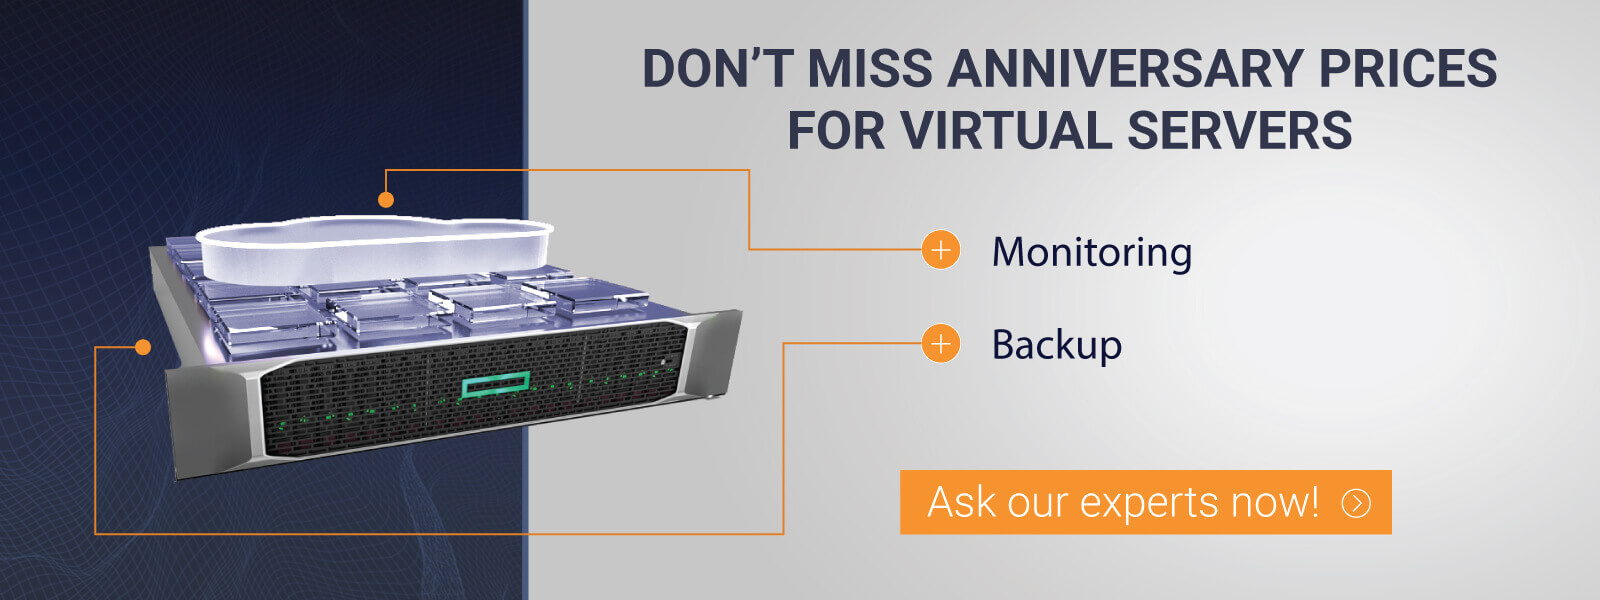 Virtual server for special prices DEAC